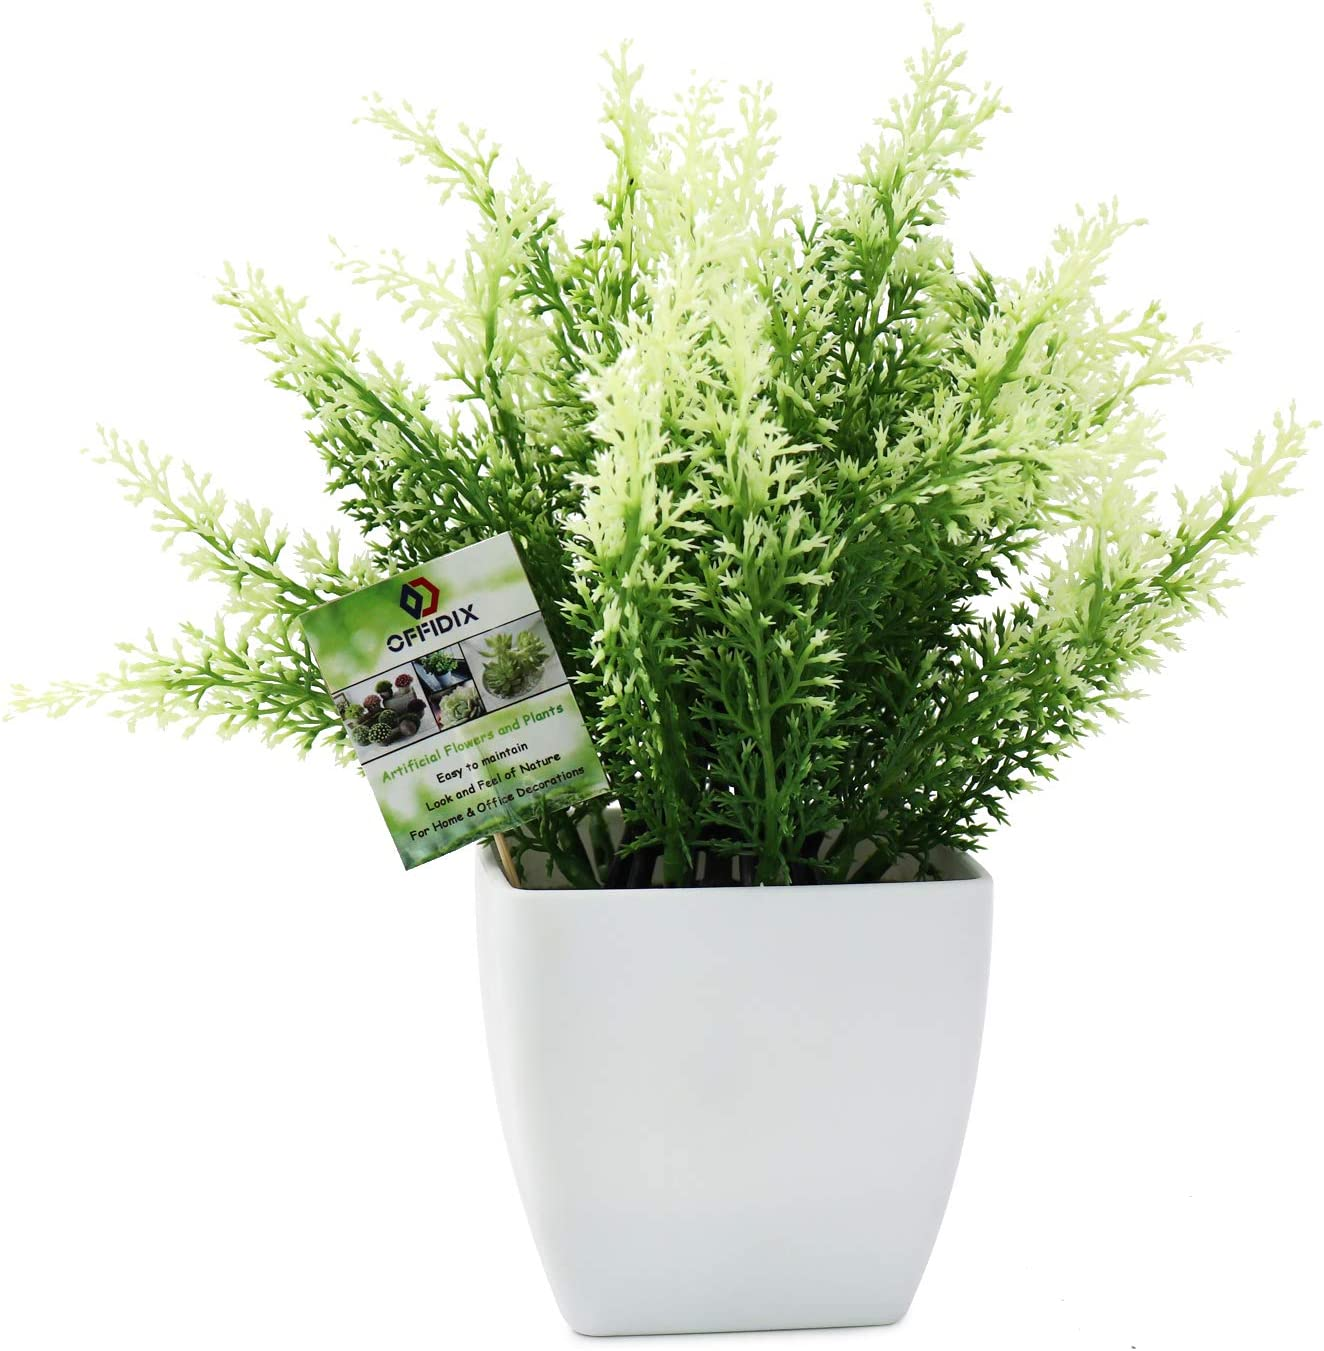 OFFIDIX Plastic Fake Green Plant, Faux House Plants Desk Plant Artificial Plants with White Square Vase for Farmhouse,Home,Garden,Office,Patio,Wedding and Indoor Outdoor Decoration